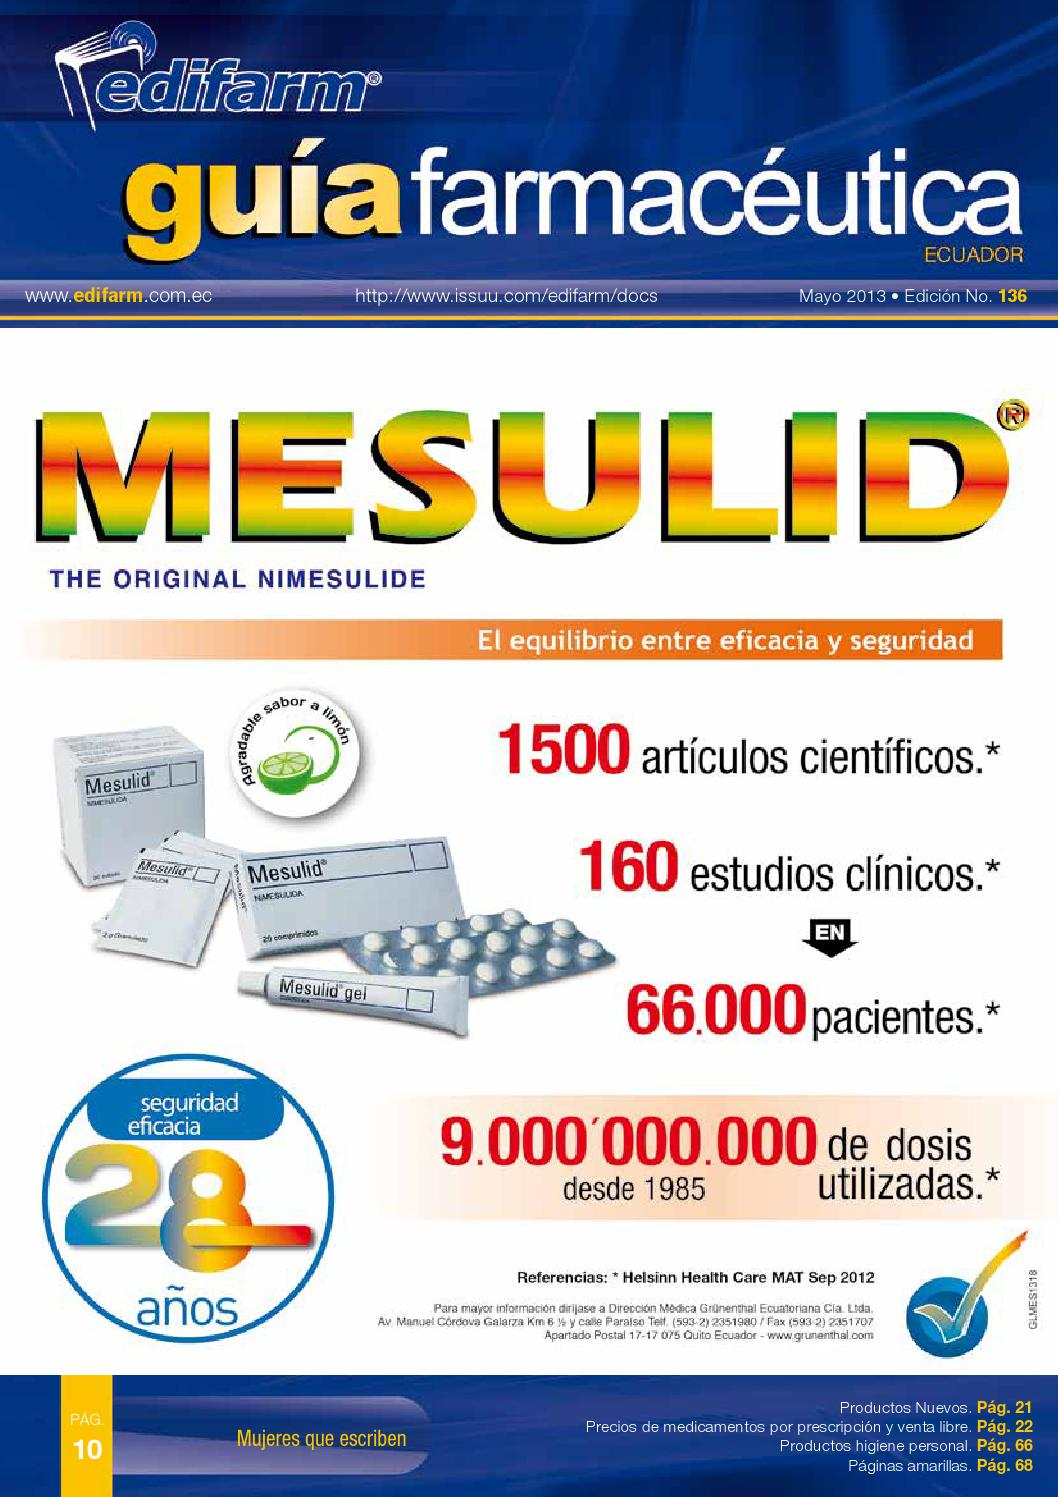 Guia Farmaceutica N 136 By Edifarm Cia Issuu